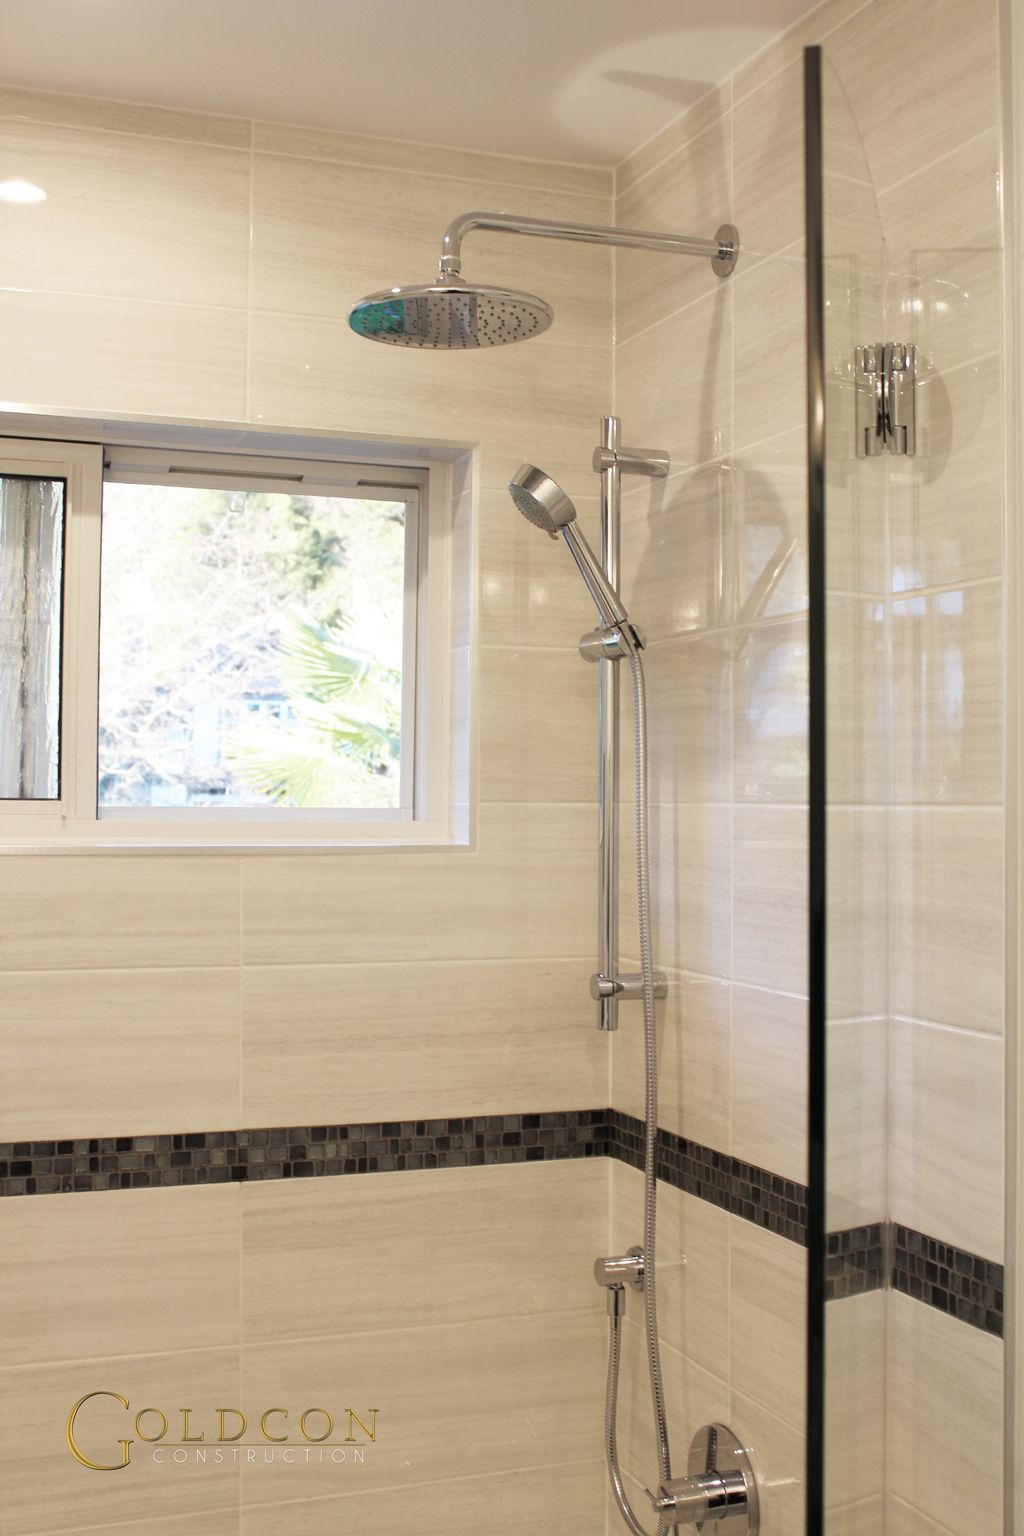 Beautiful Bathroom Renovation Project Featuring 8 X 20 Wall